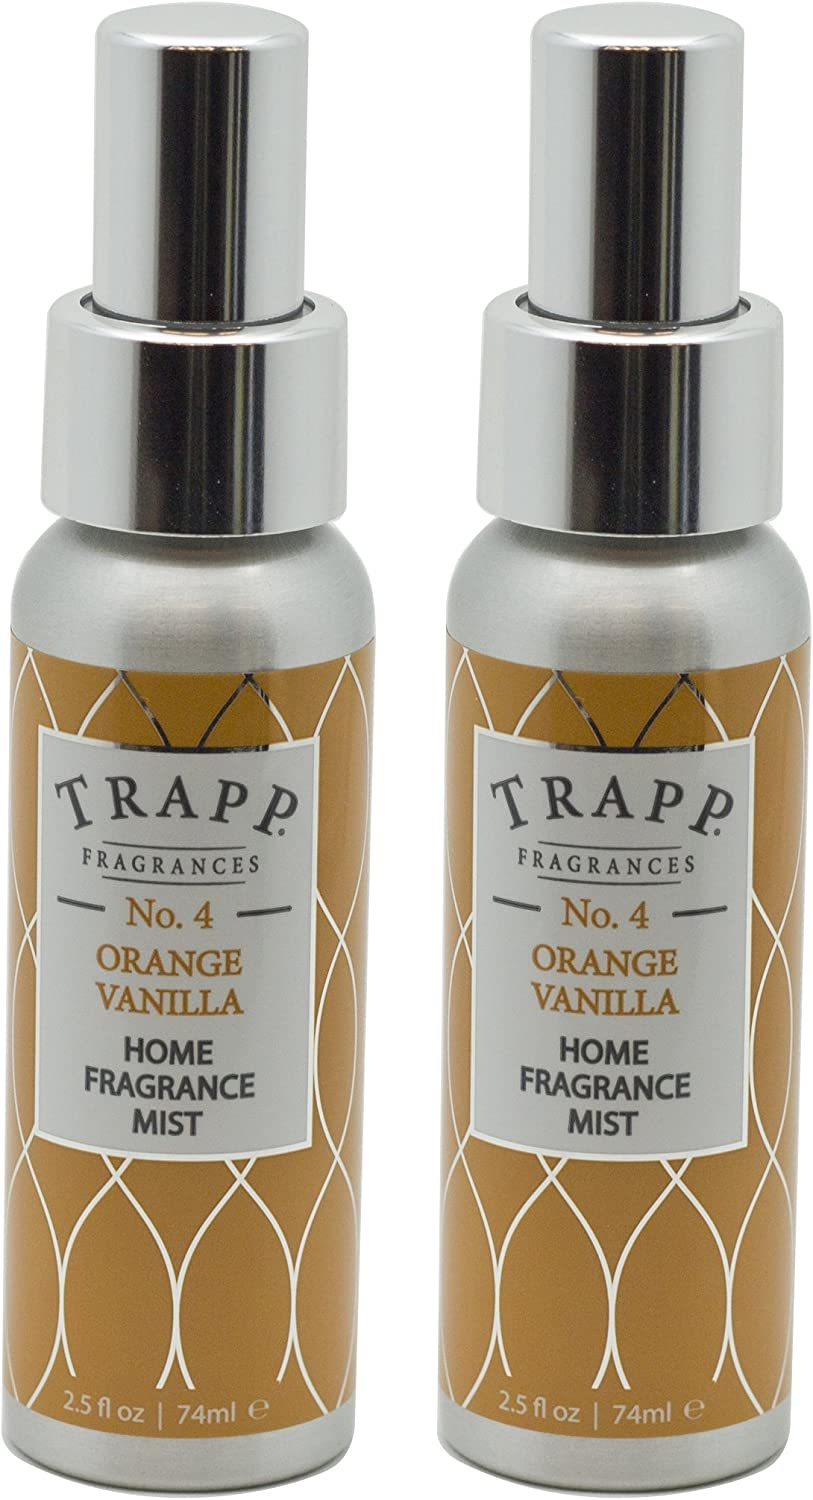 Trapp Home Fragrance Mist, No. 4 Orange/Vanilla, 2.5-Ounce (2-Pack)